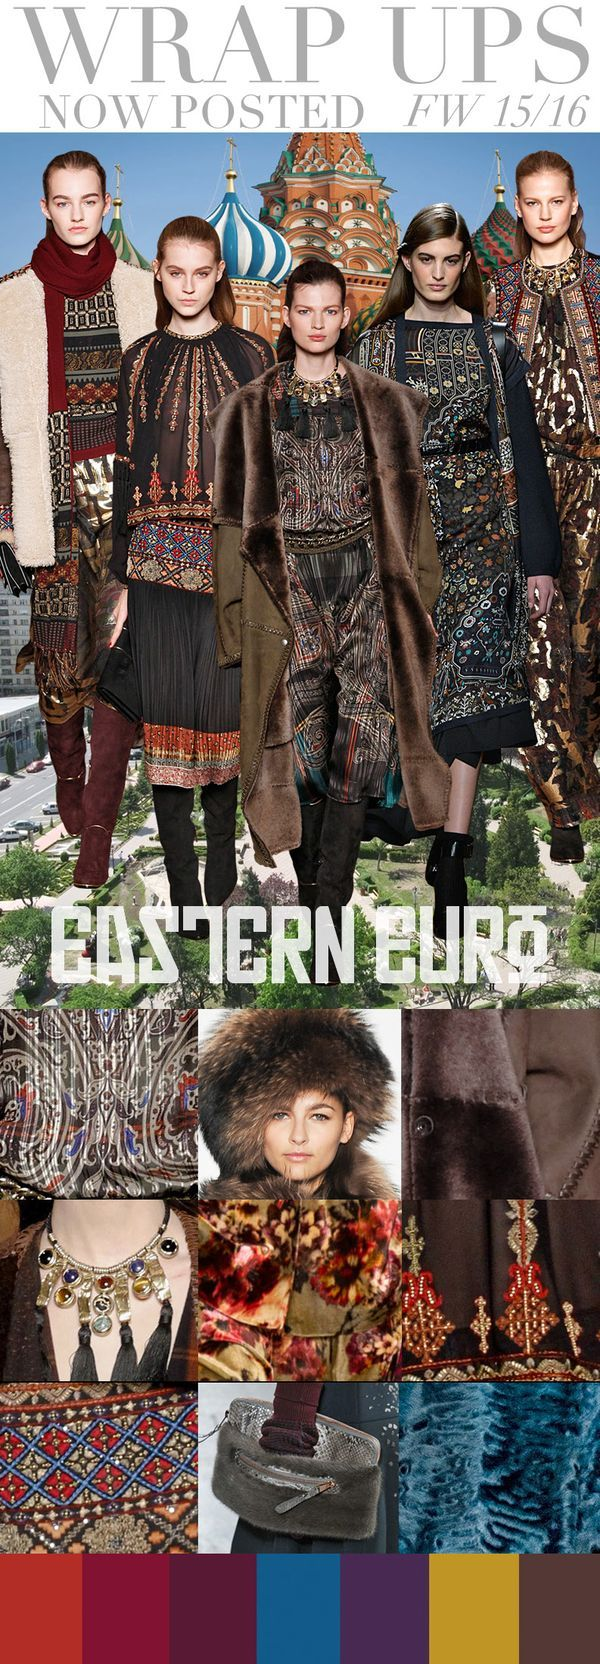 Trend Council: Wrap Ups - FW Eastern Euro Everything that I adore.